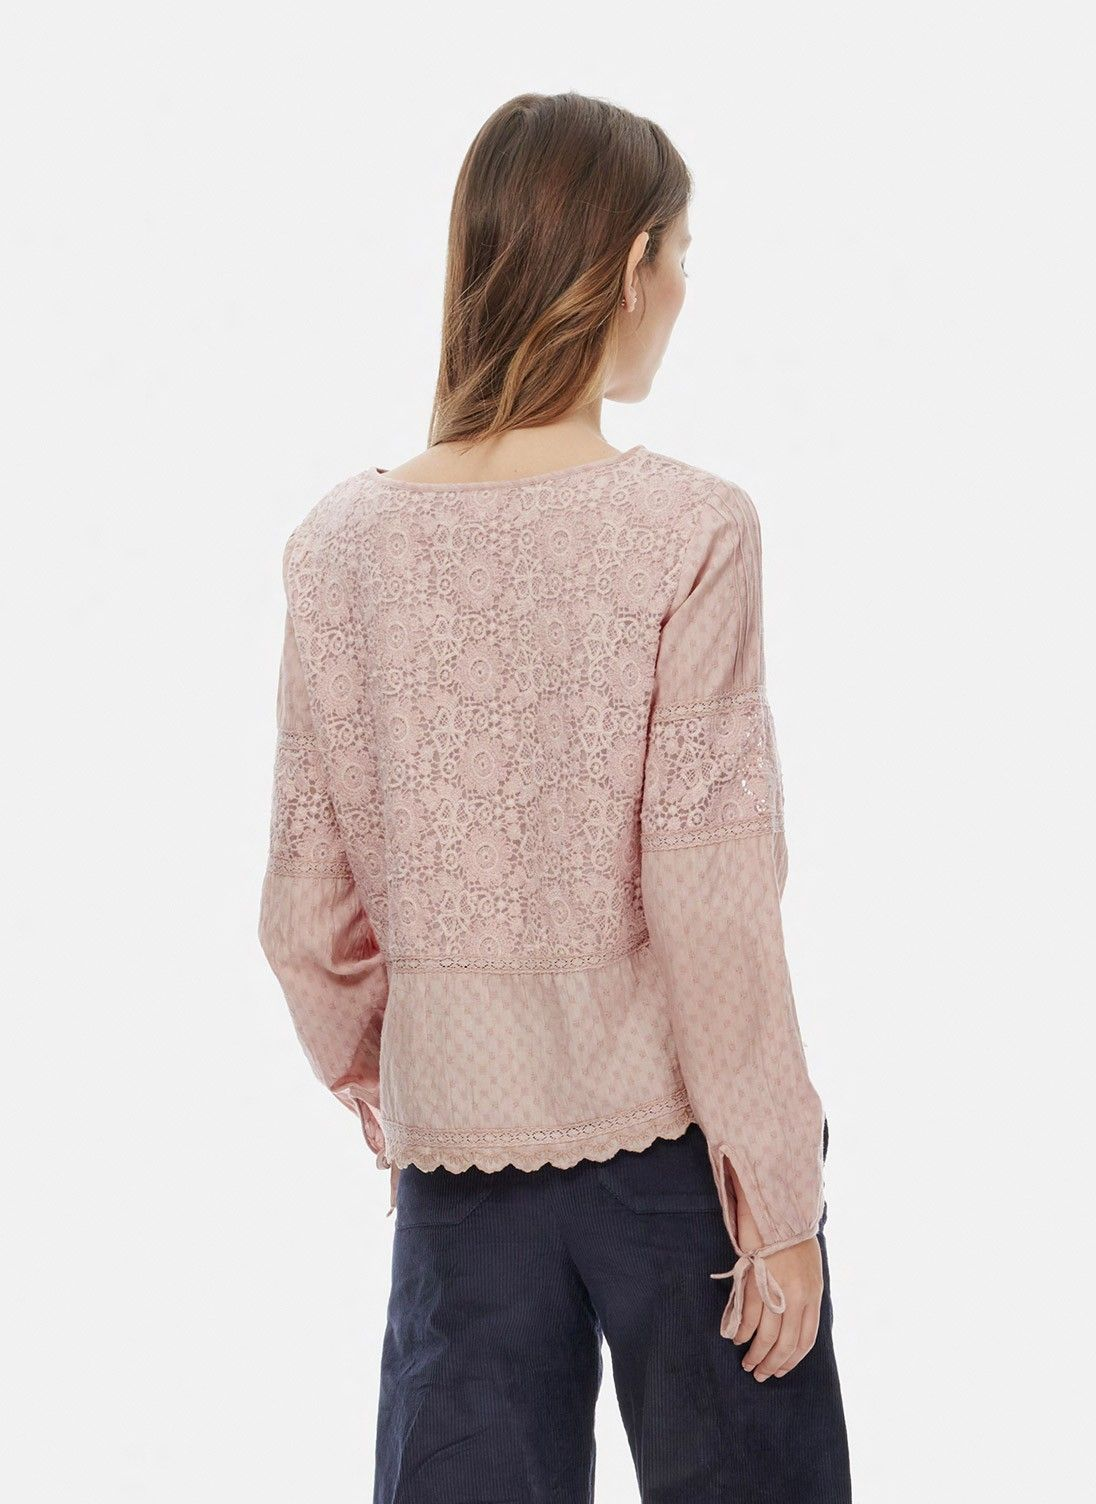 5ccb9777a05958 Textured Lace Blouse by Brora | Clothing | Lace, Shirt blouses, Blouse